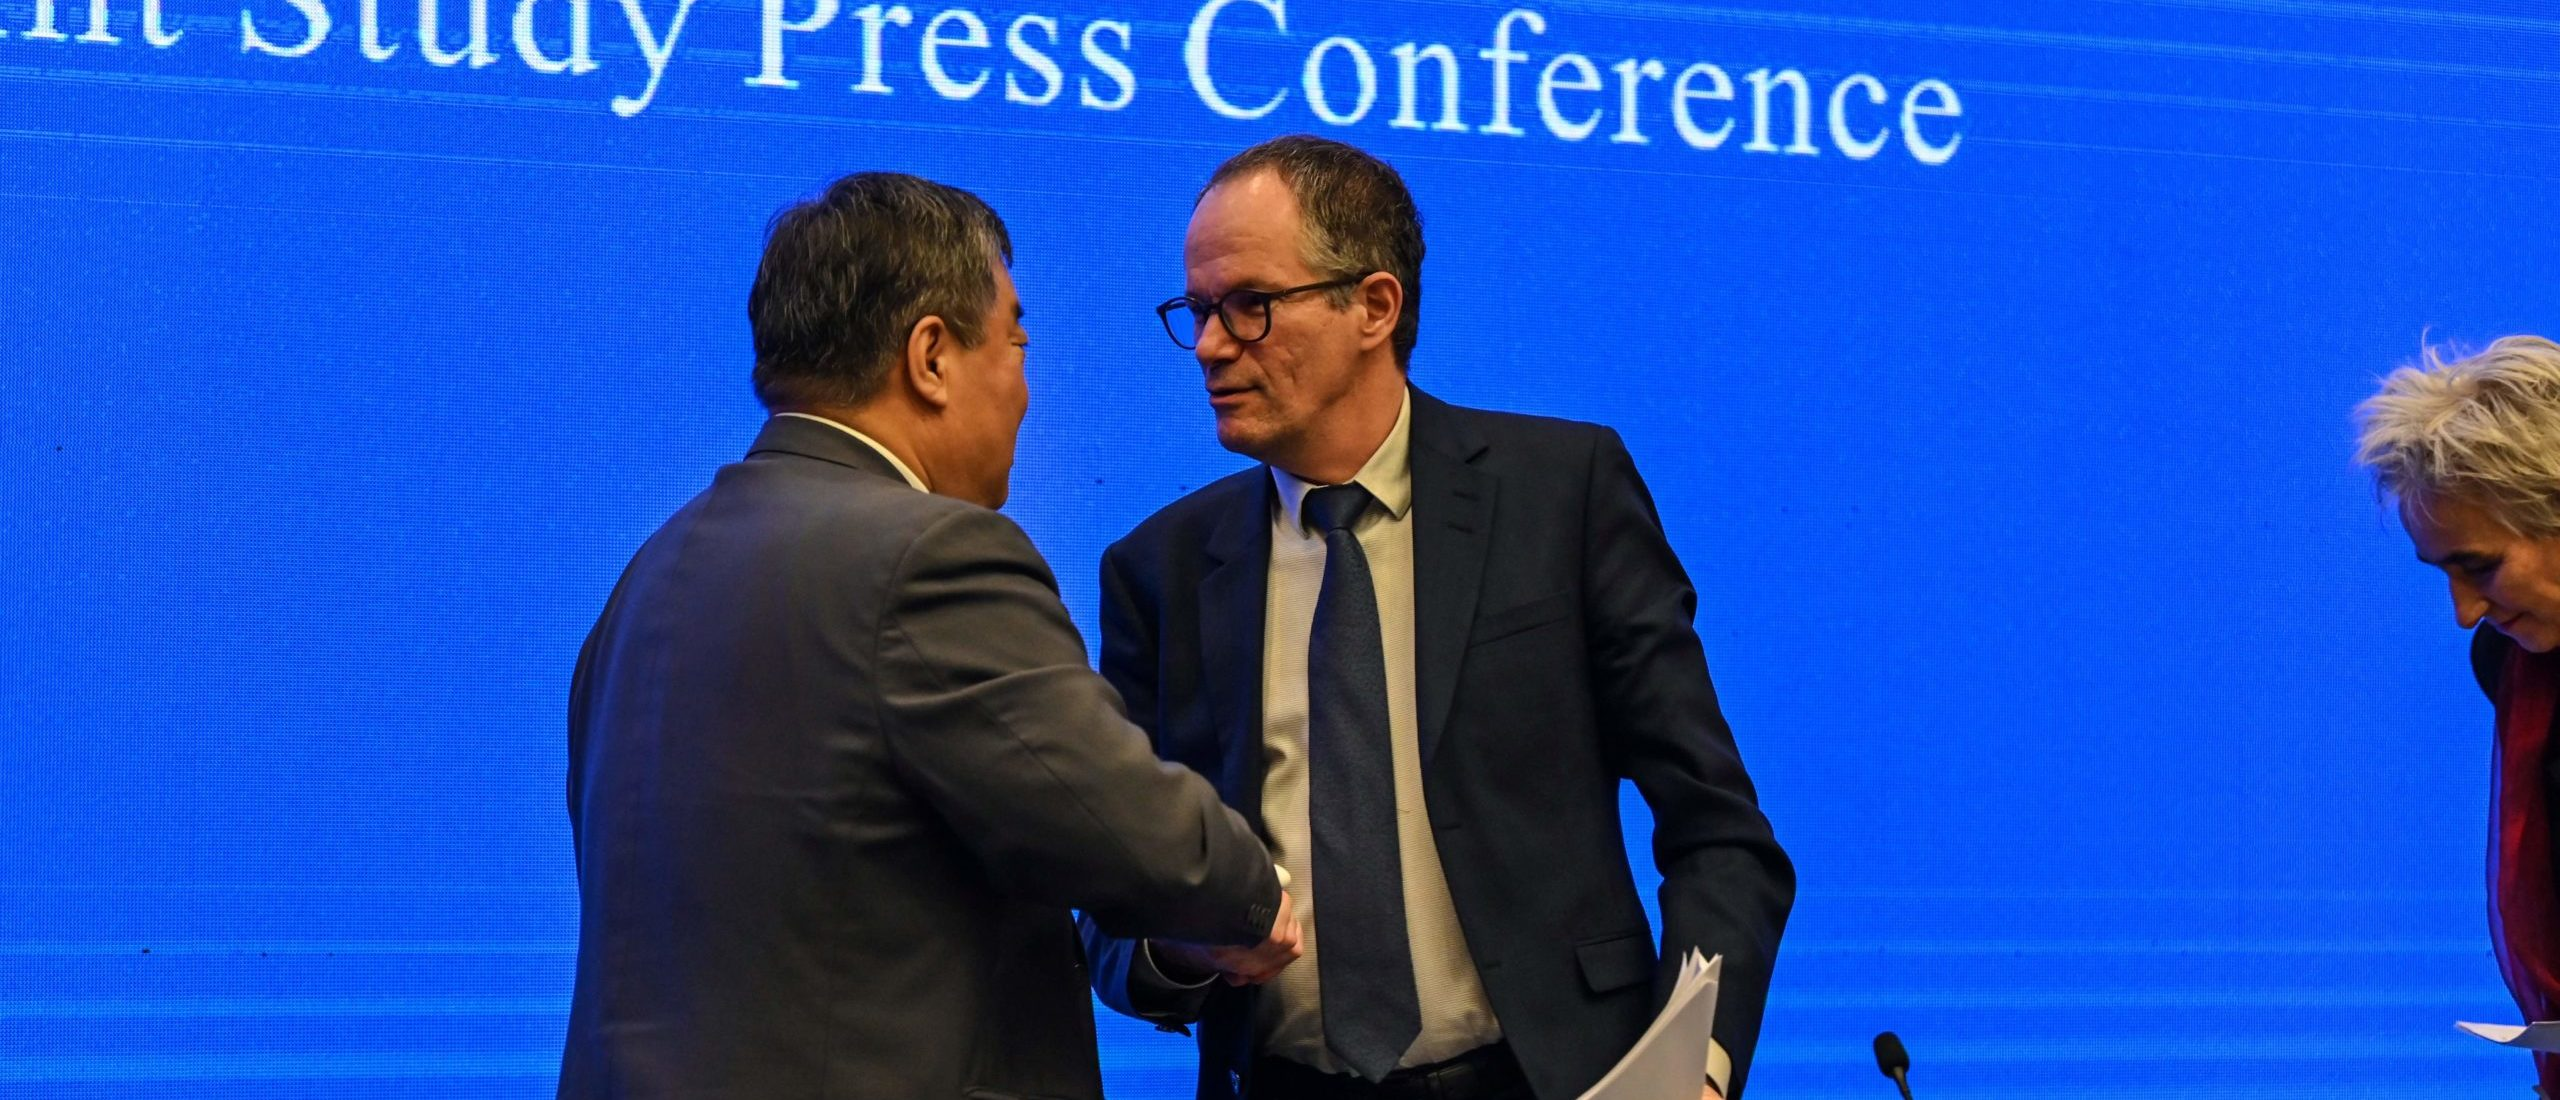 Peter Ben Embarek (R) shakes hands with Liang Wannian (L) after a press conference following a visit by the international team of experts from the World Health Organization (WHO) in the city of Wuhan, in China's Hubei province on February 9, 2021. (Photo by Hector RETAMAL / AFP) (Photo by HECTOR RETAMAL/AFP via Getty Images)